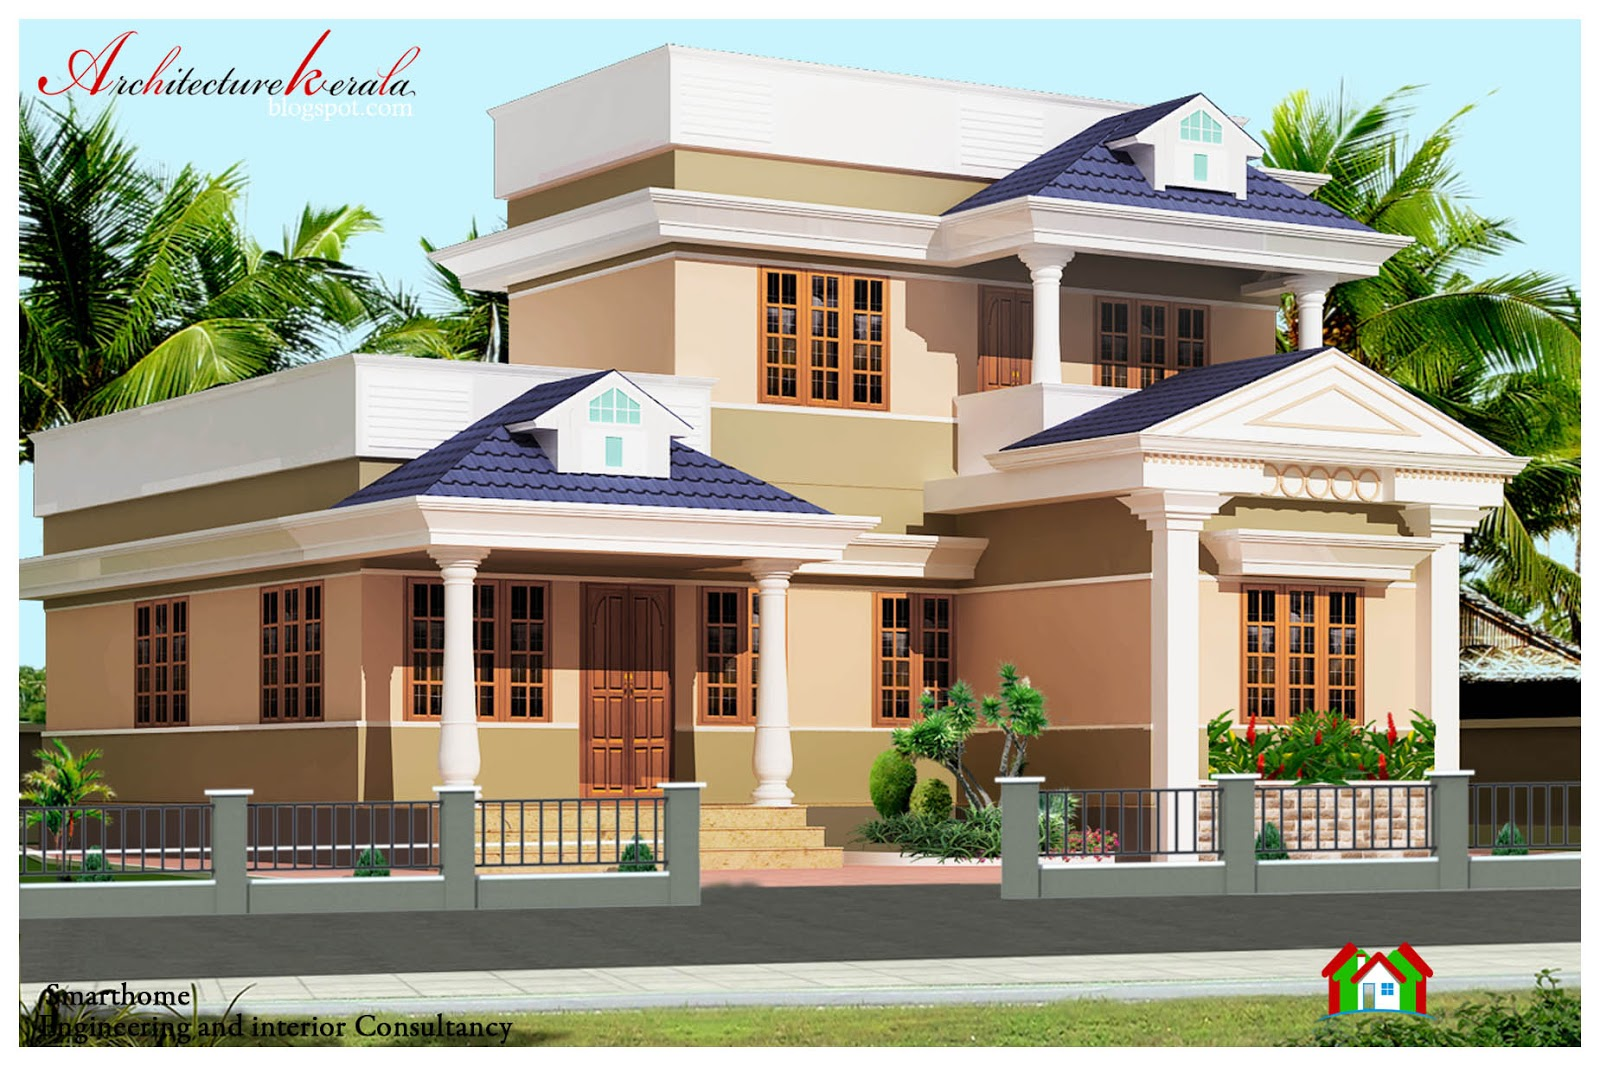 architecture kerala 1000 sq ft kerala style house plan